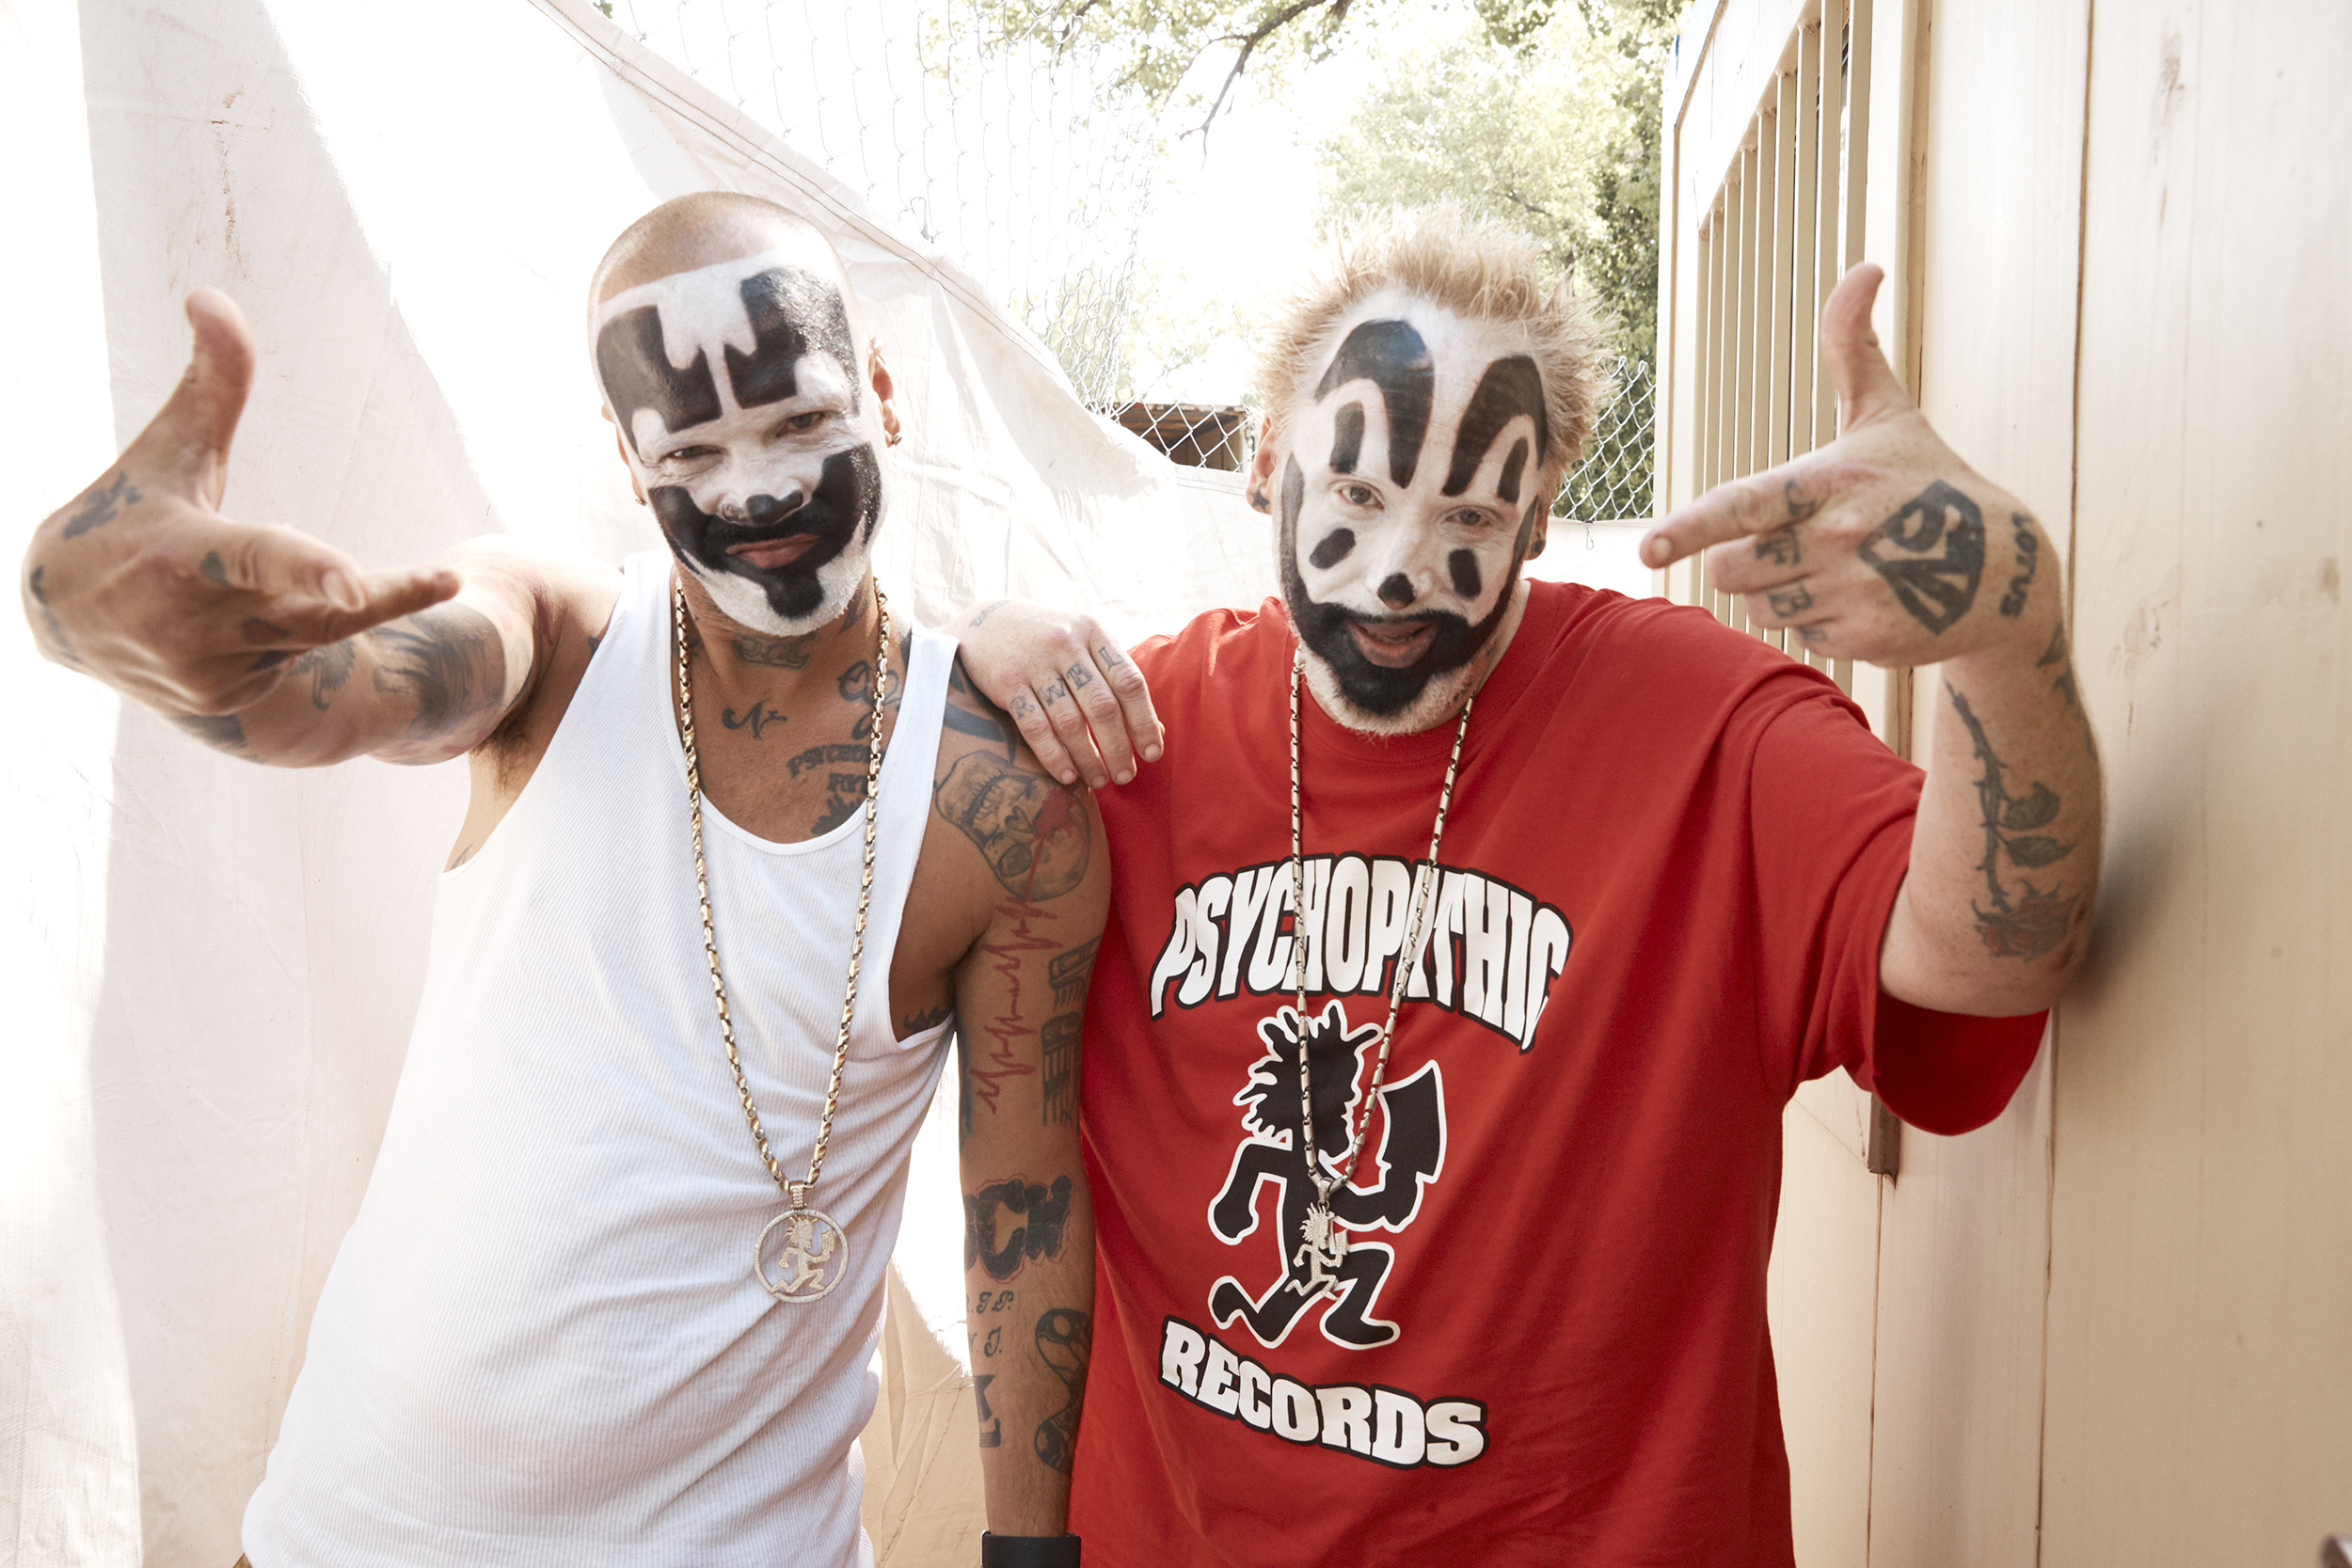 Image: Gathering Of The Juggalos in Oklahoma City, OK